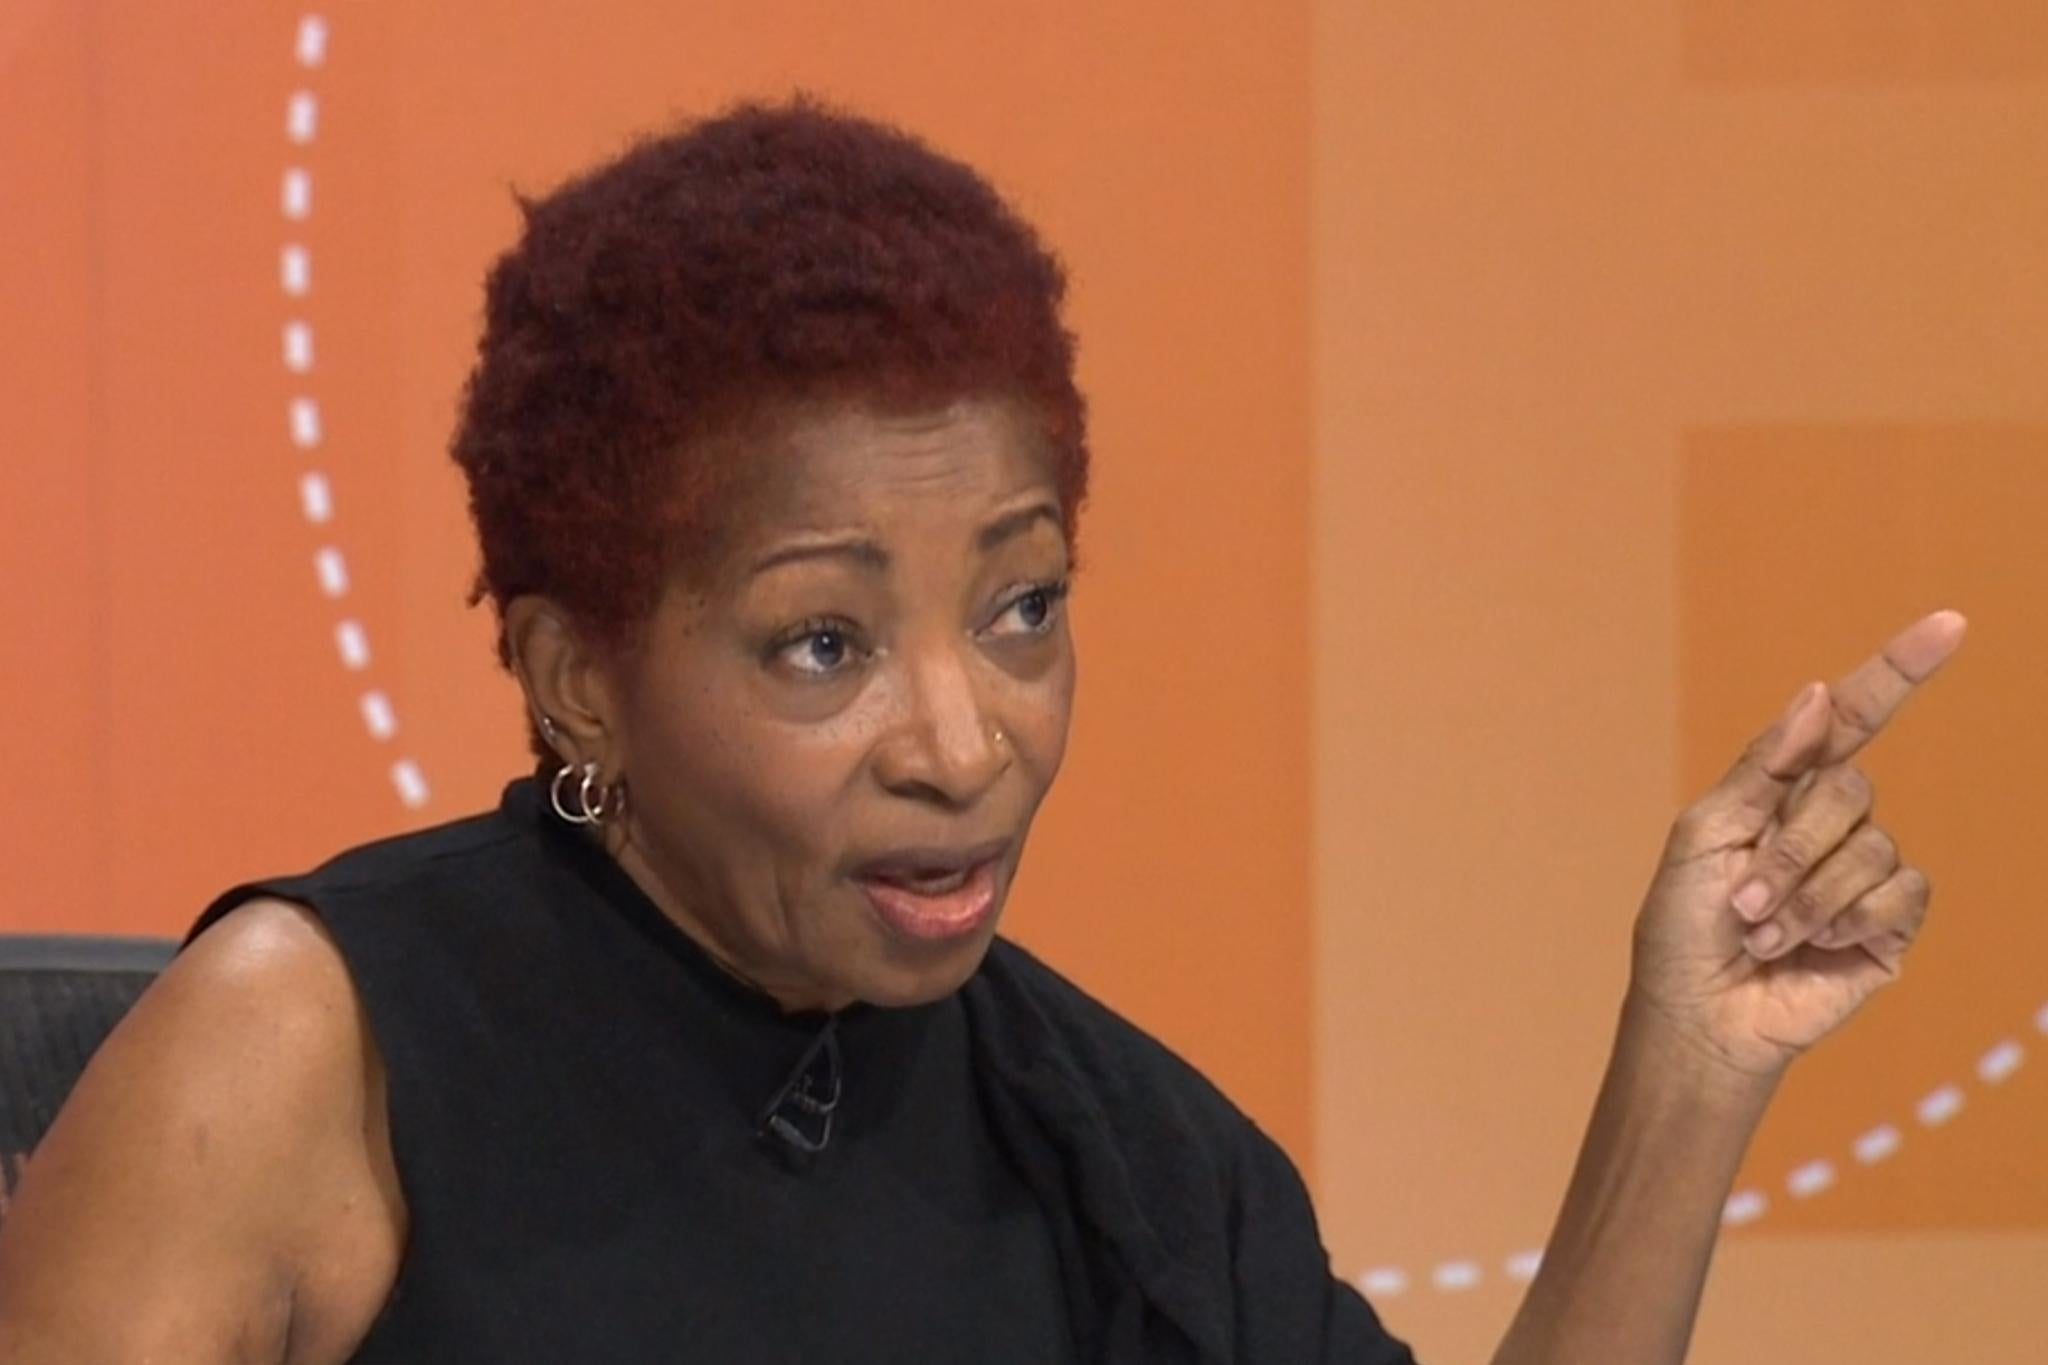 Bonnie Greer becomes national hero in Ireland after impassioned Brexit plan rebuke on Question Time: 'Can we get her an Irish passport?'